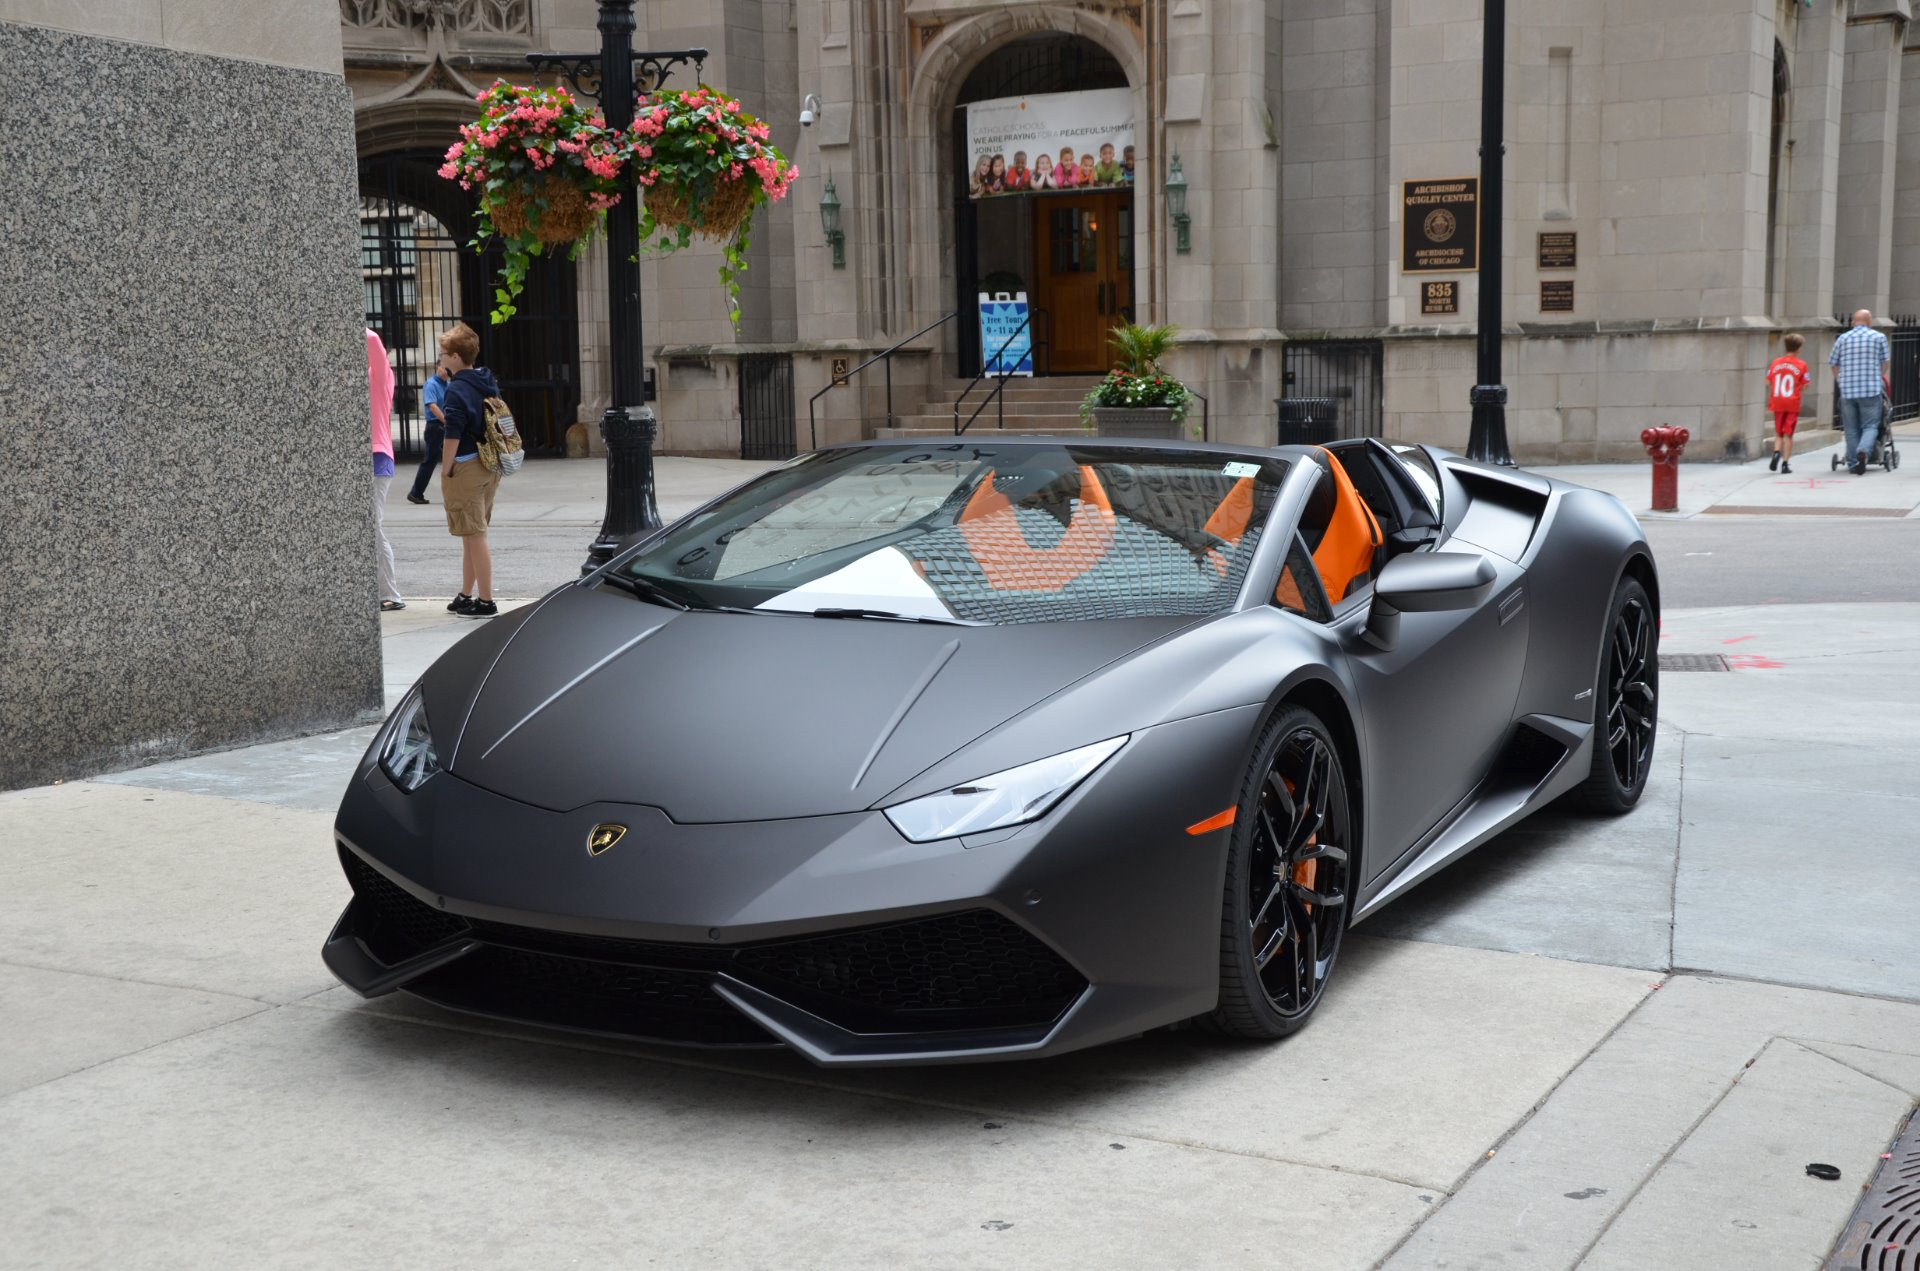 2017 lamborghini huracan spyder lp 610 4 spyder stock gc2113 for sale near chicago il il. Black Bedroom Furniture Sets. Home Design Ideas